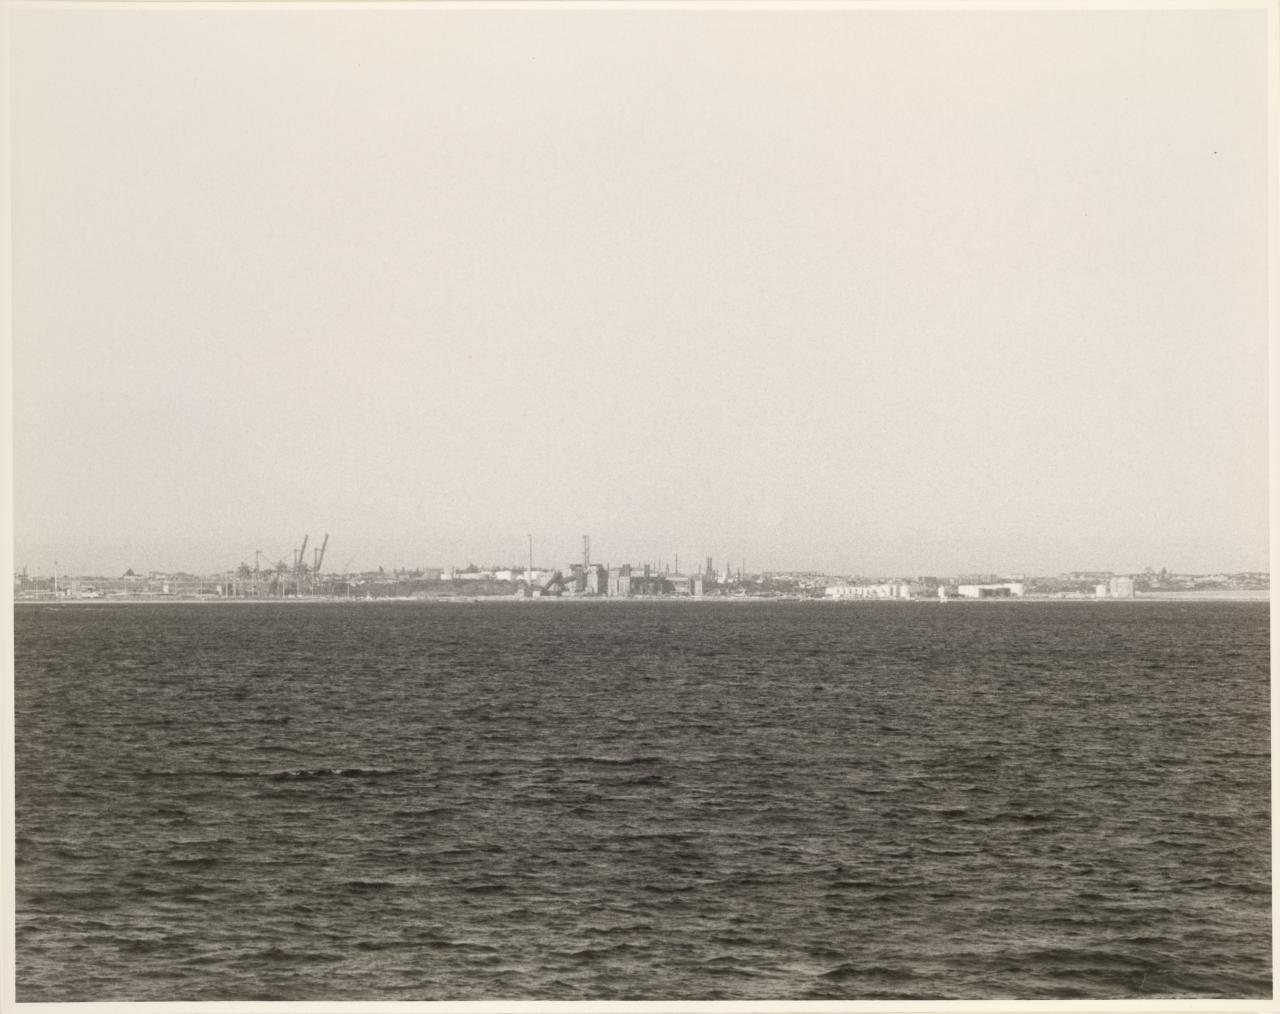 Port Botany from Brighton-le-sands